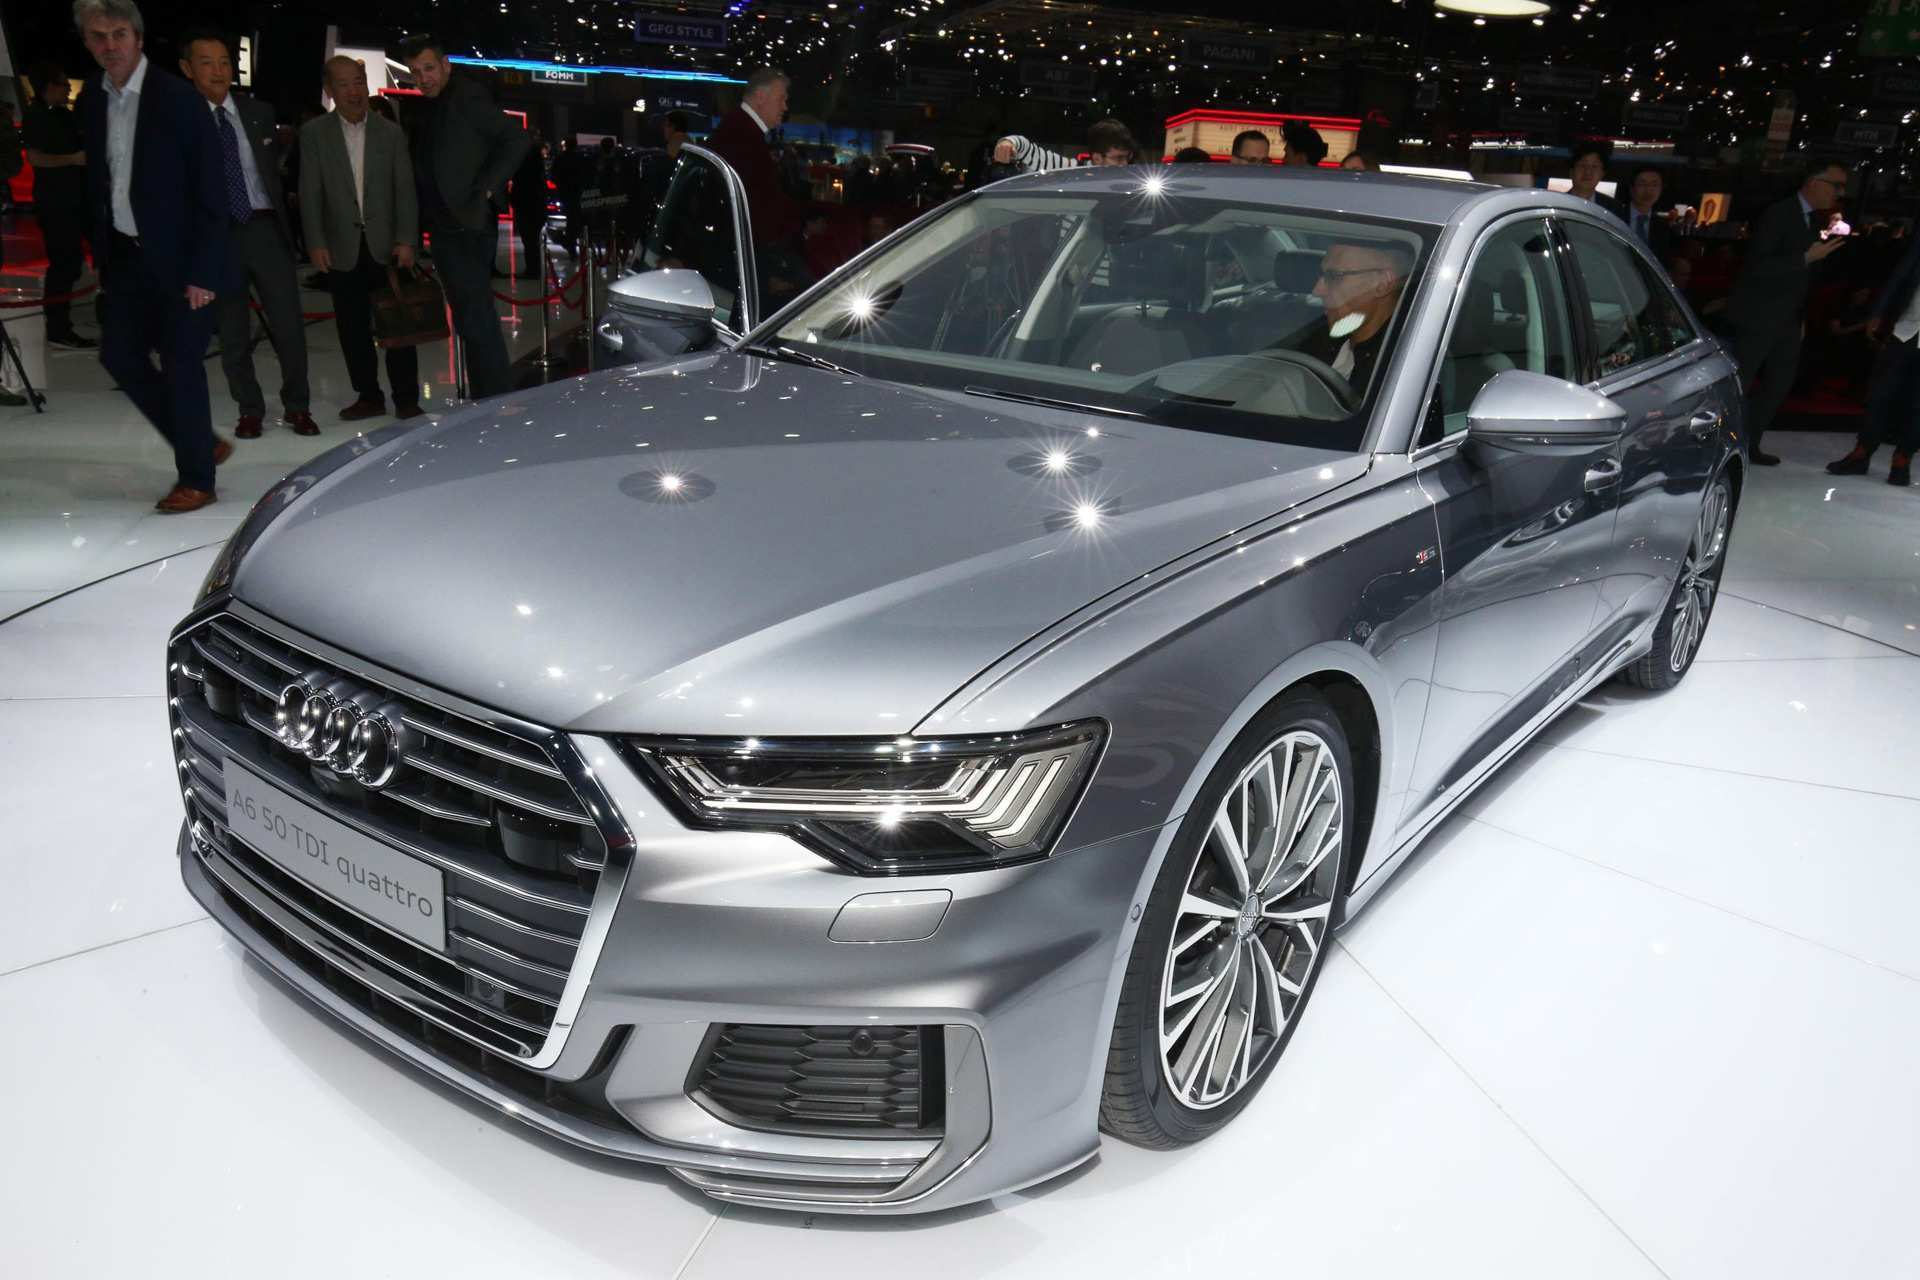 61 Great 2019 Audi A6 News Photos for 2019 Audi A6 News